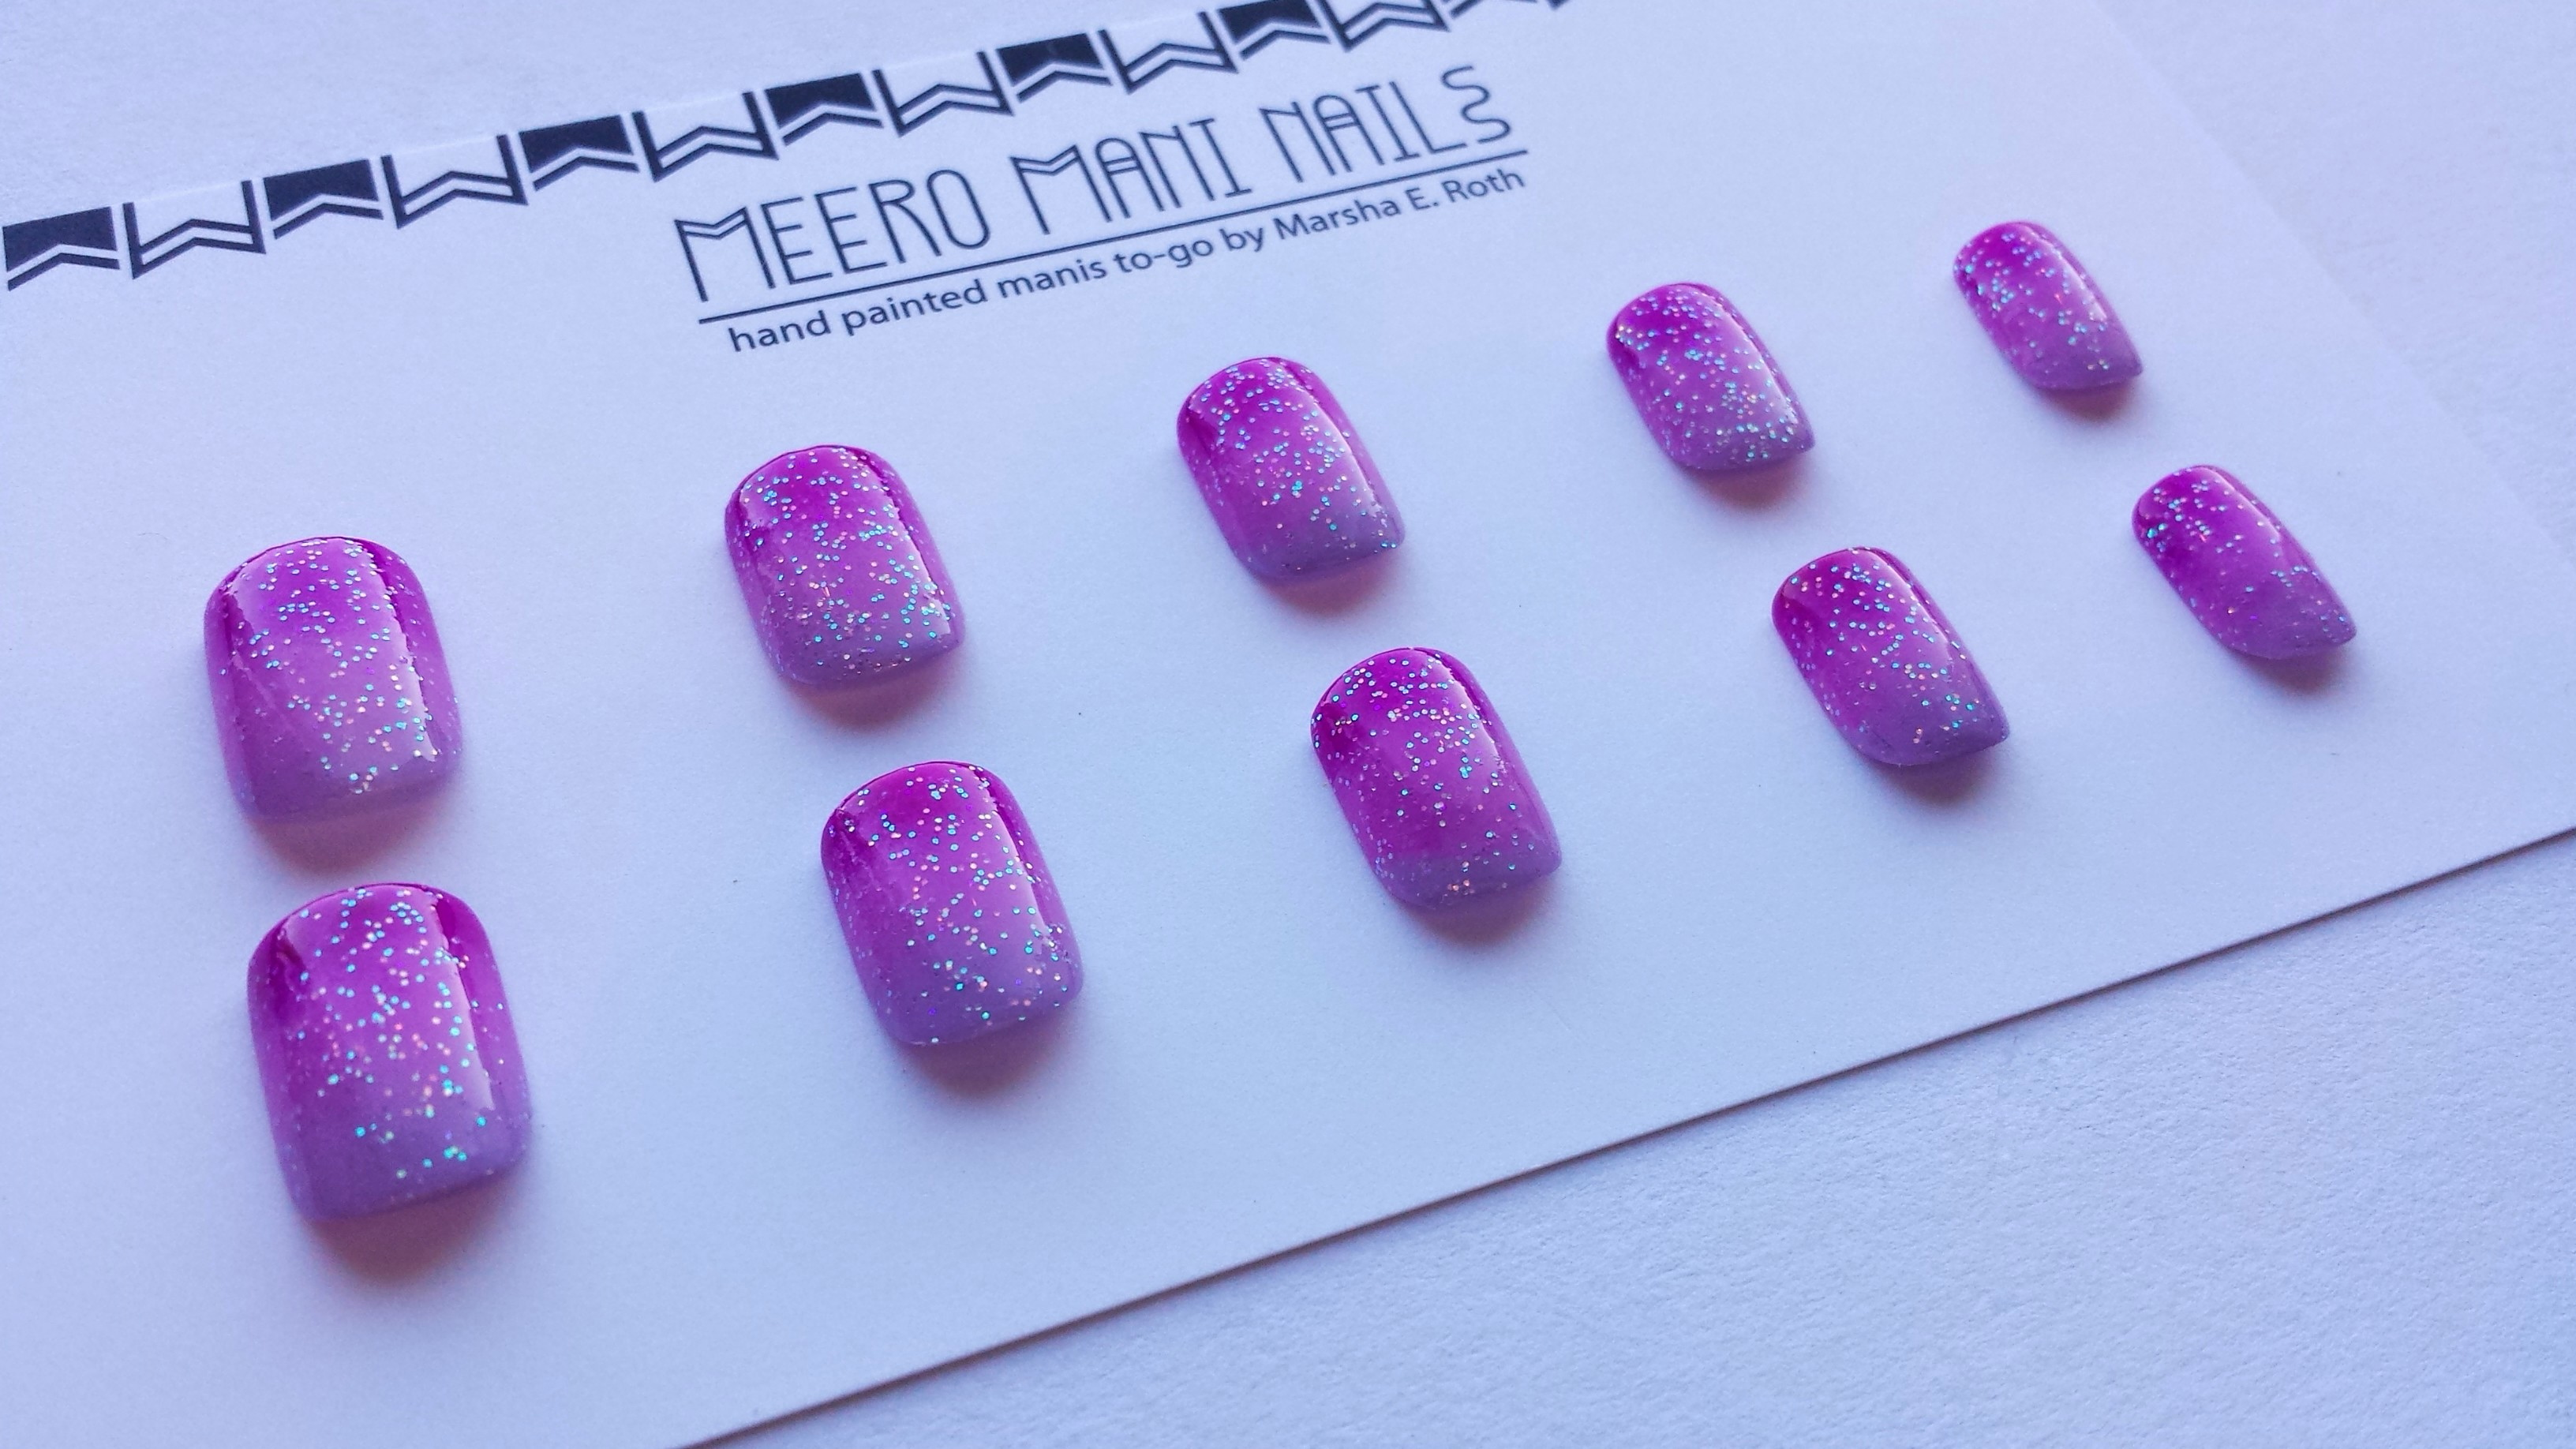 Purple Princess Press On False Nails · MEERO MANI NAILS · Online ...